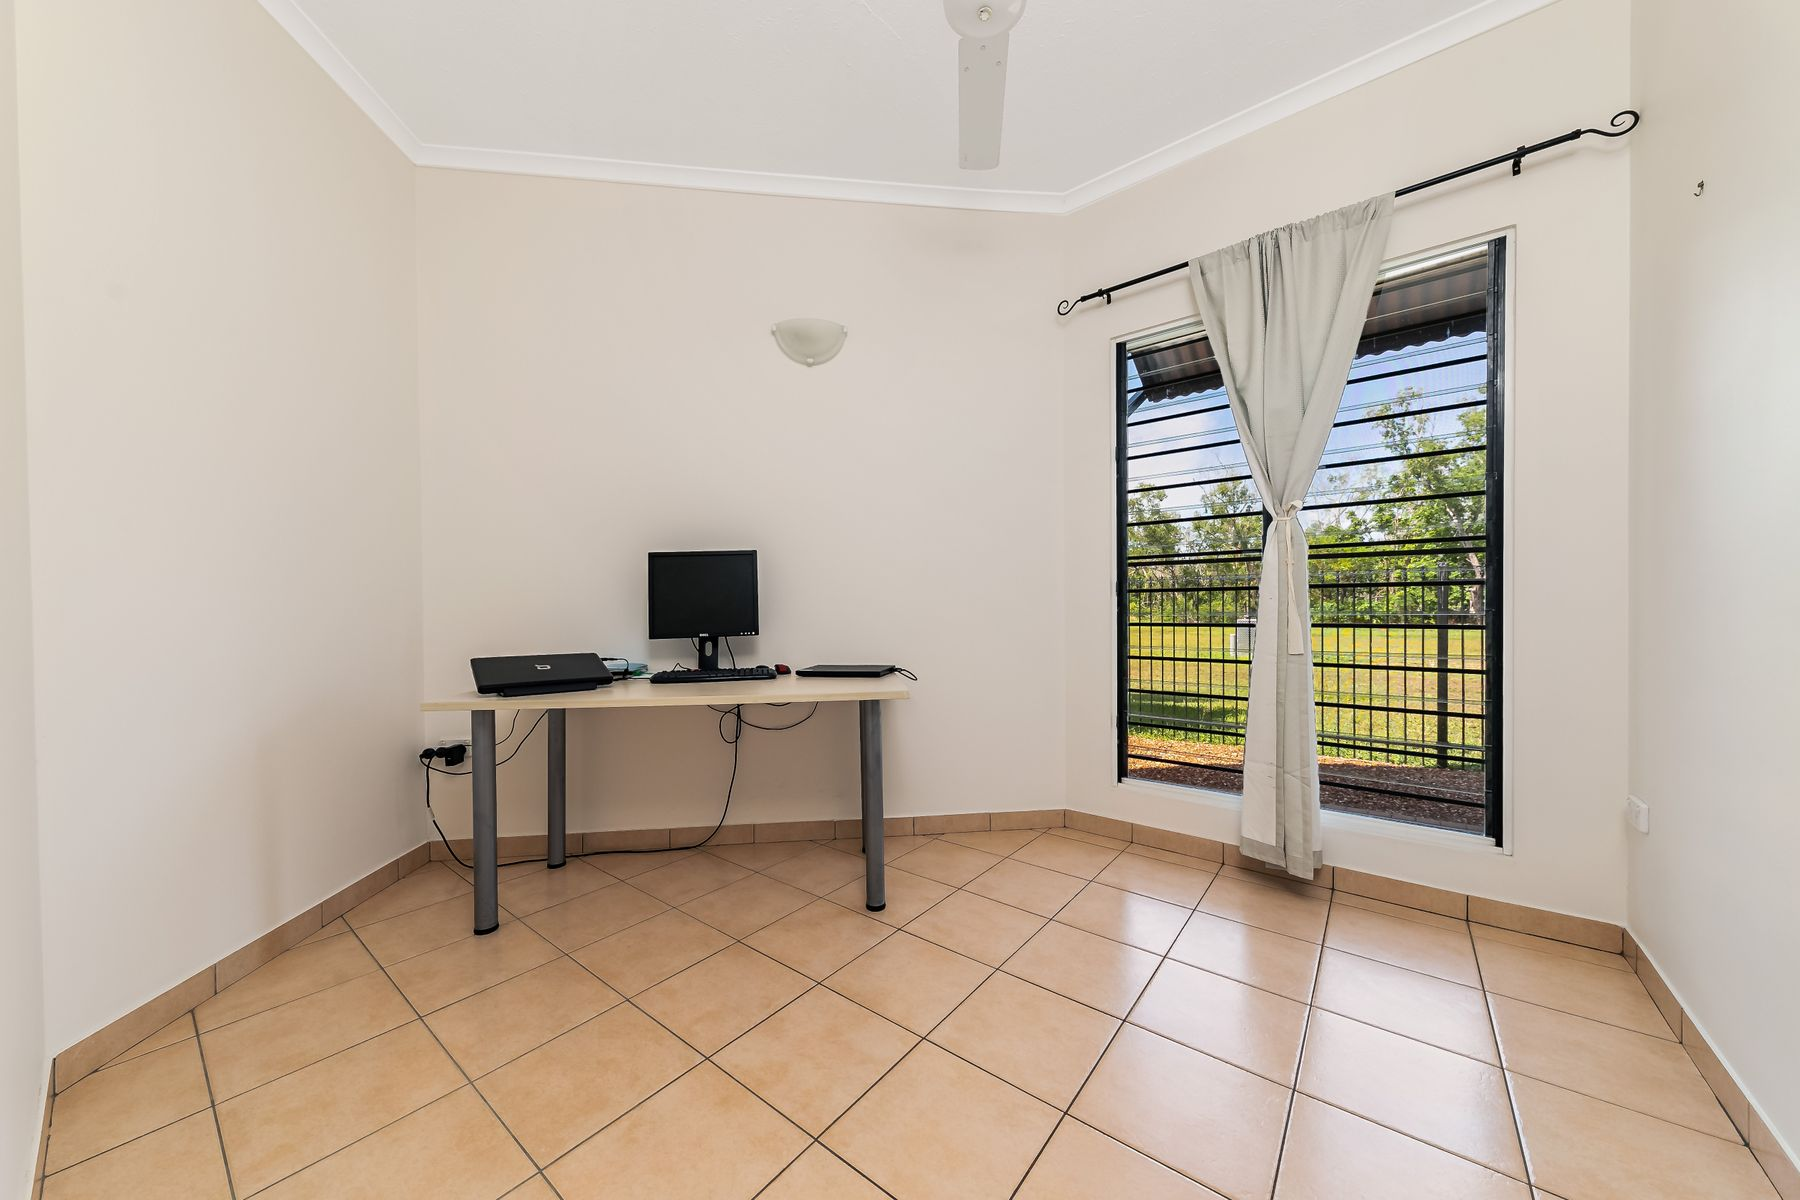 6/35 George Crescent, Fannie Bay, NT 0820